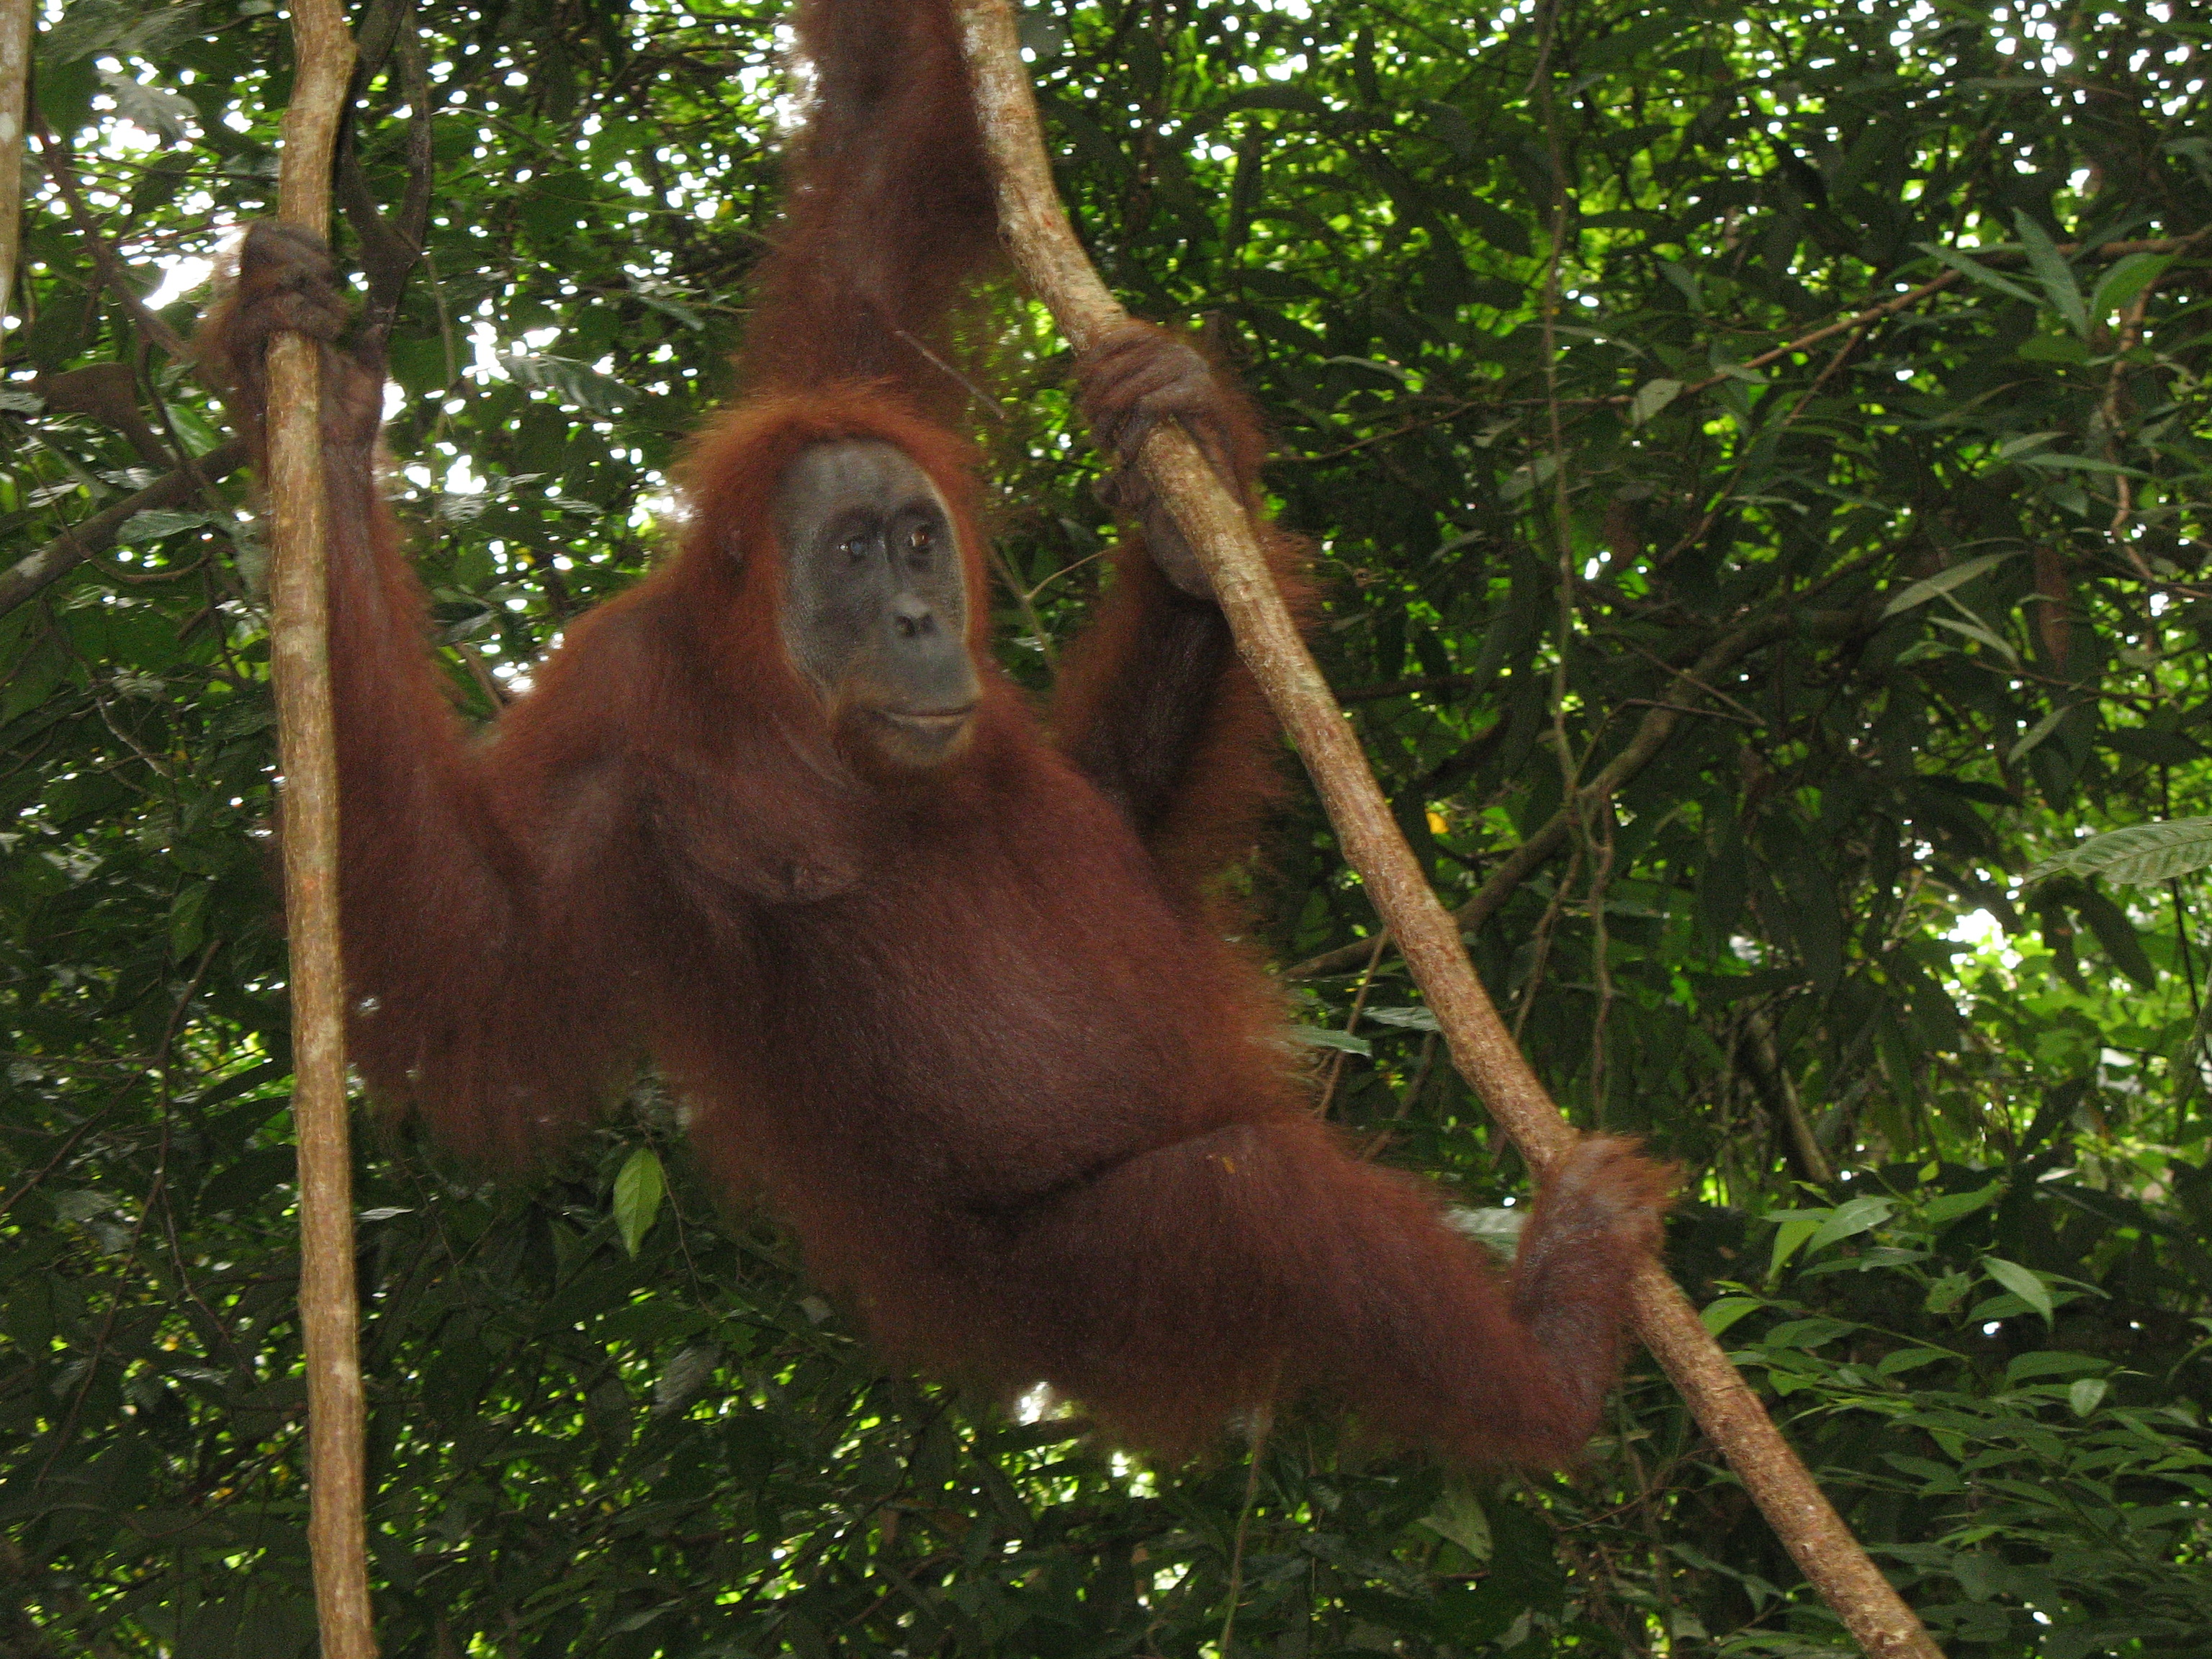 The Sumatran orangutan - pushed closer to extinction by the global trade in palm oil. Photo Geoff Law